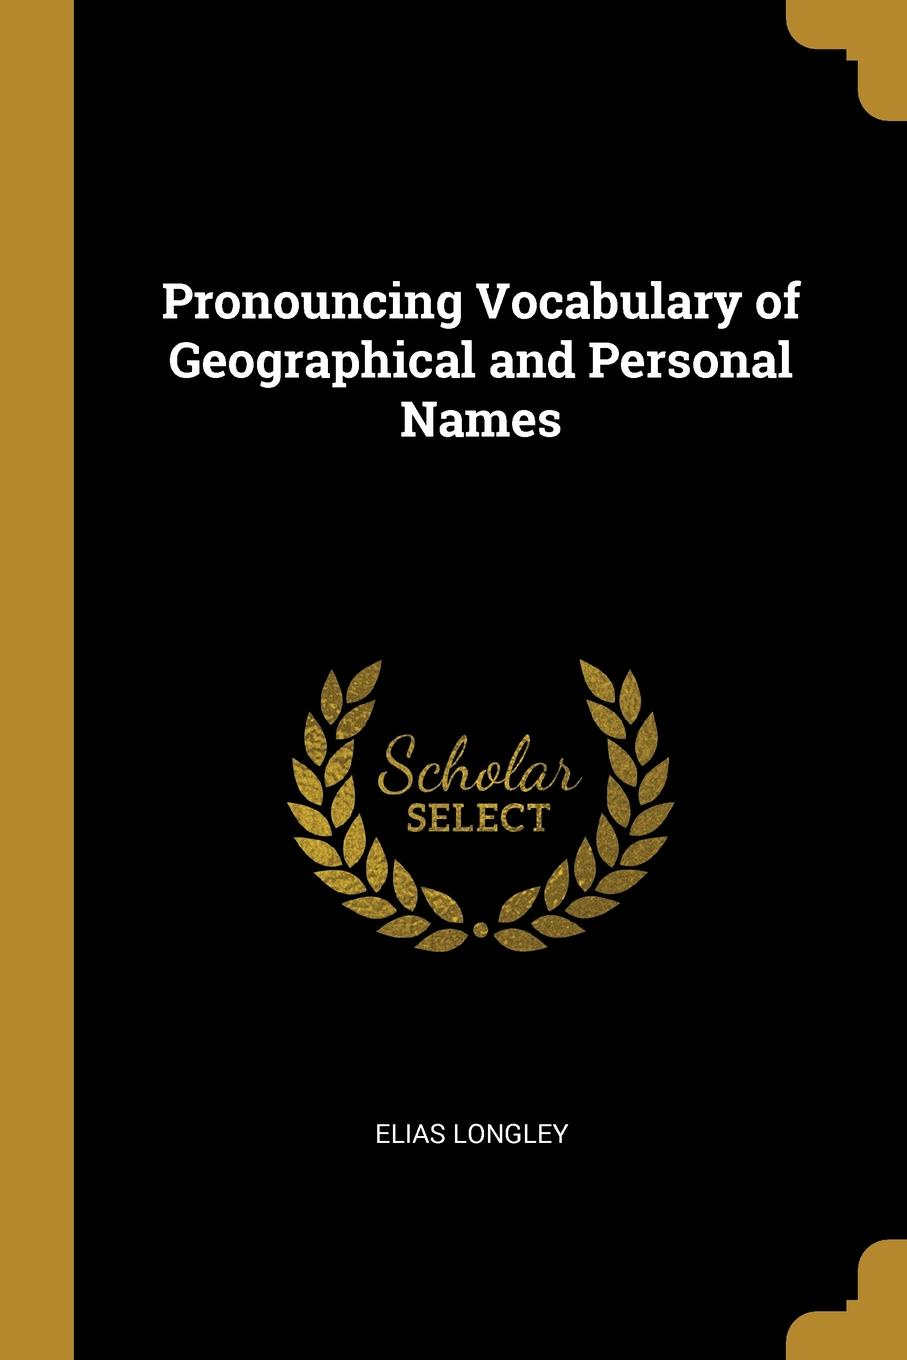 Pronouncing Vocabulary of Geographical and Personal Names